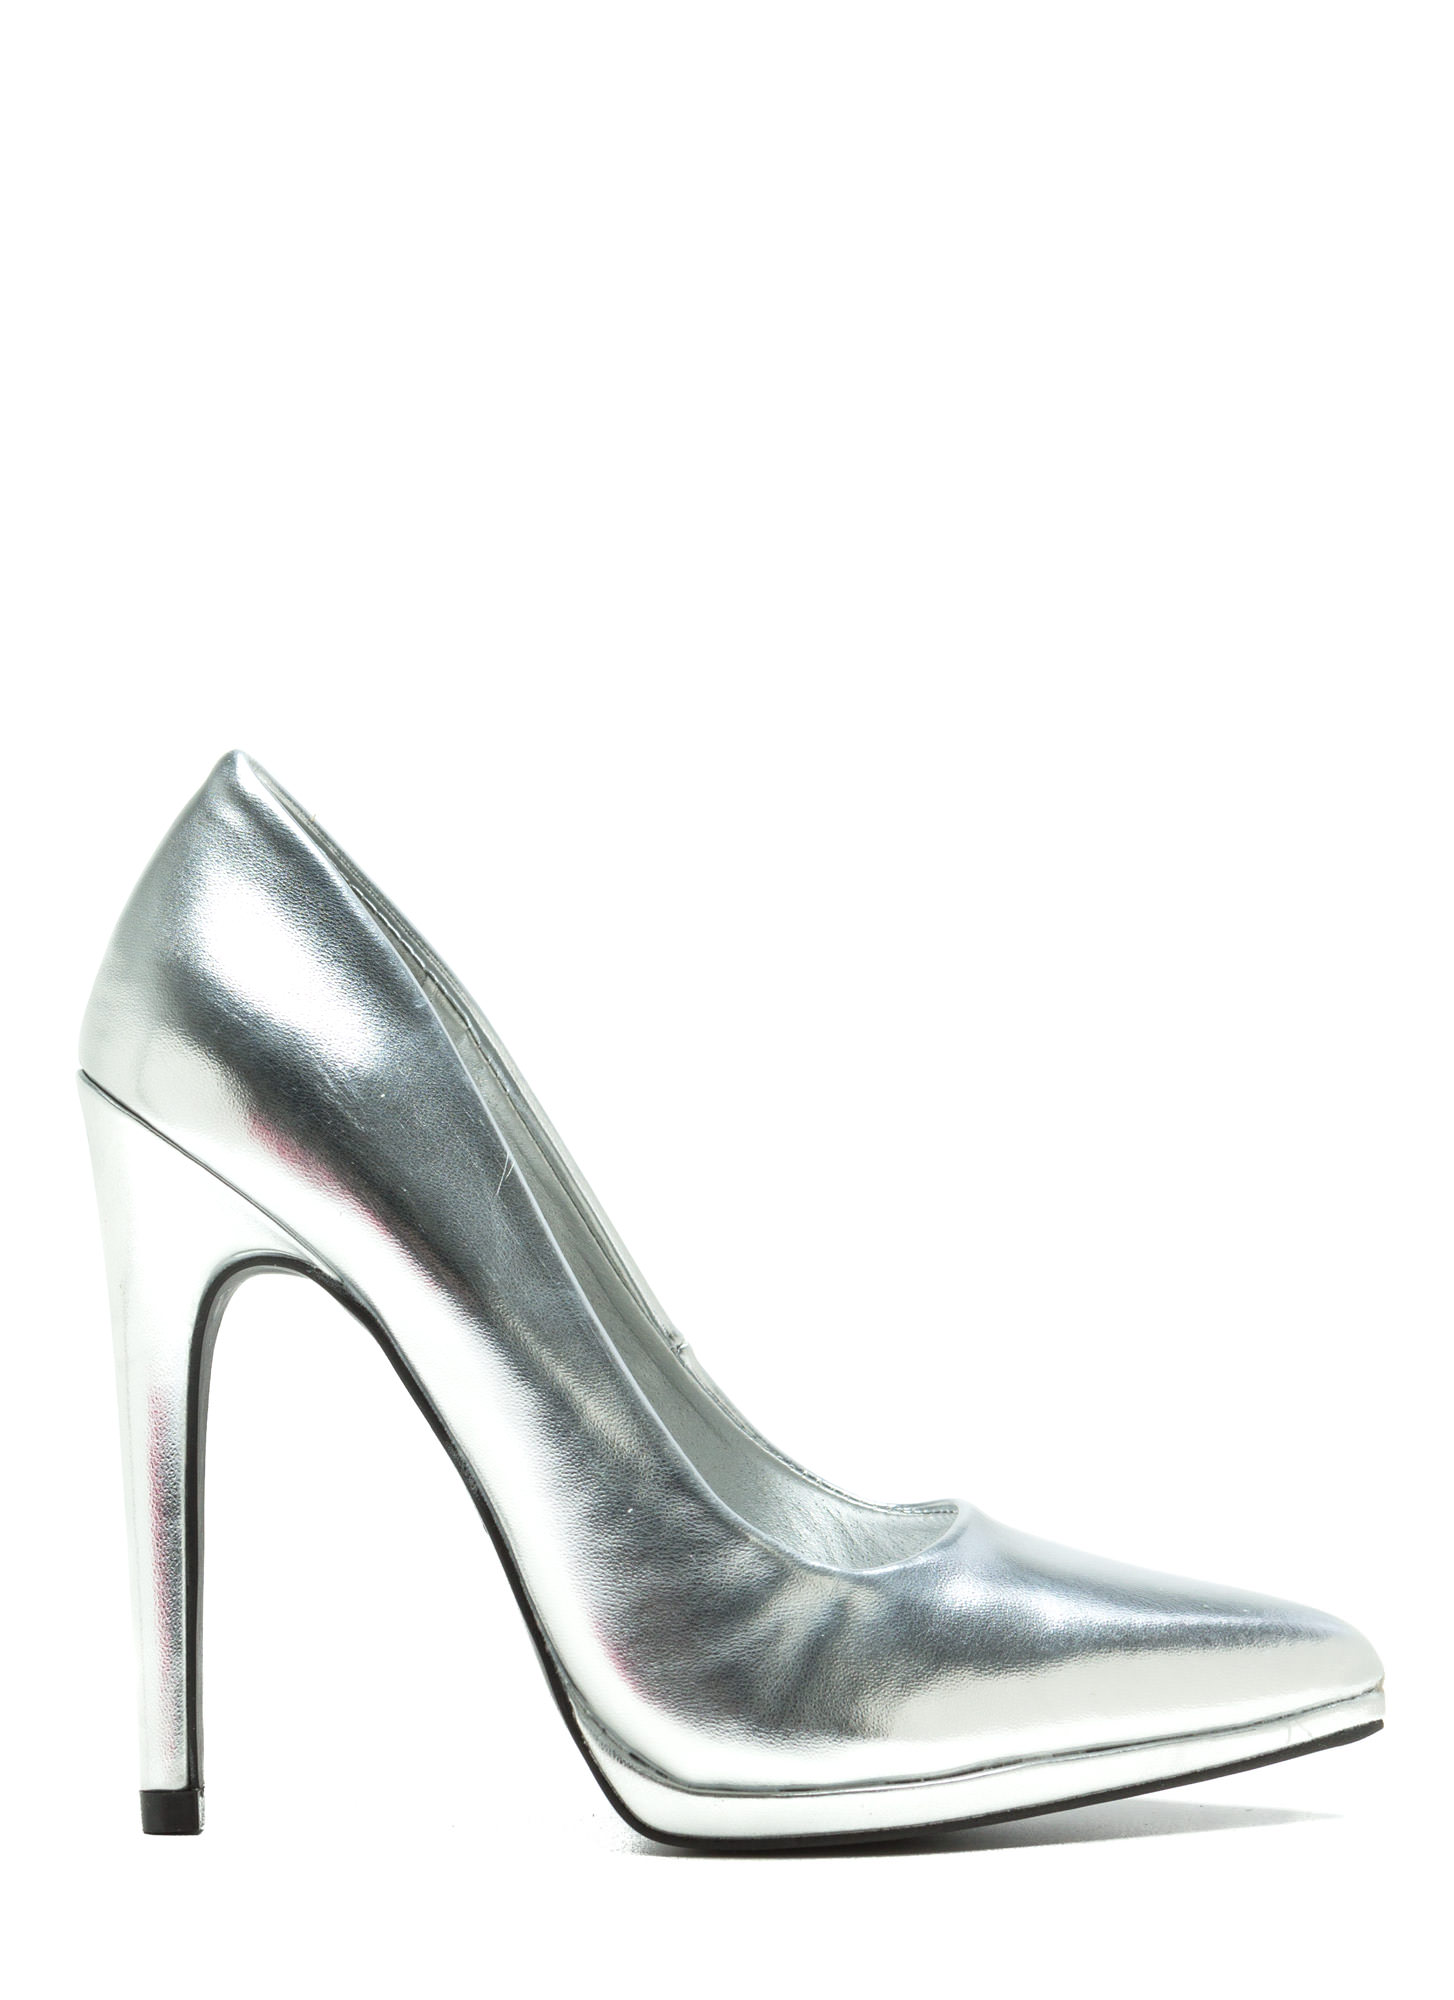 Silver Heels For Sale